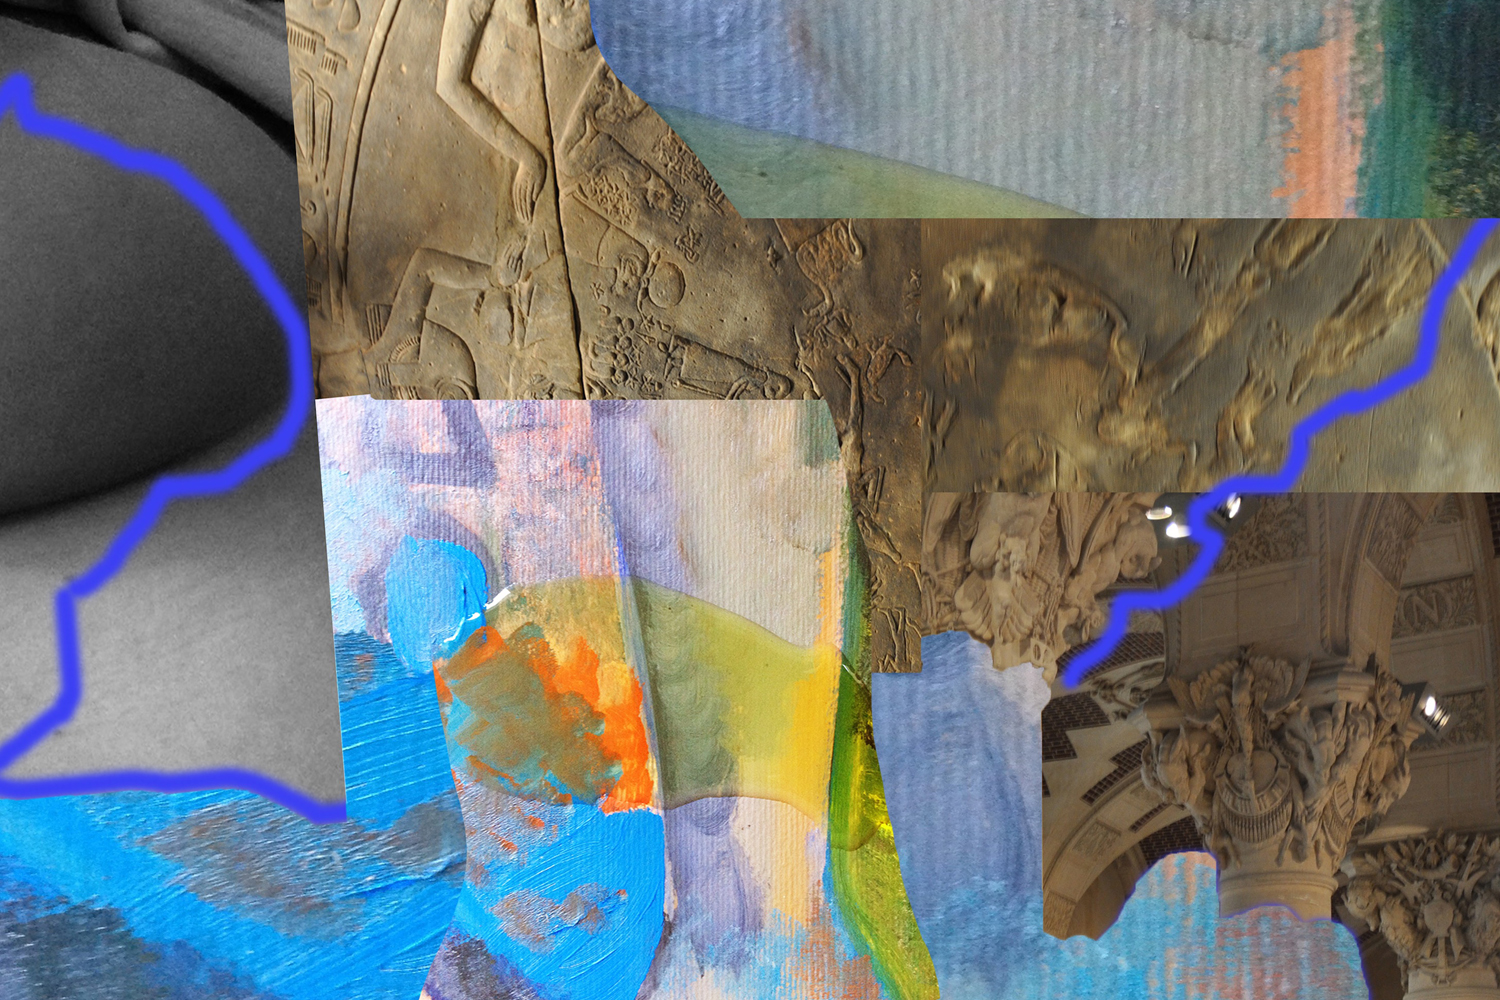 AzzaZein_Sea of Corners-2_photographs and oil painting in a digital collage_dimvar.j.jpg